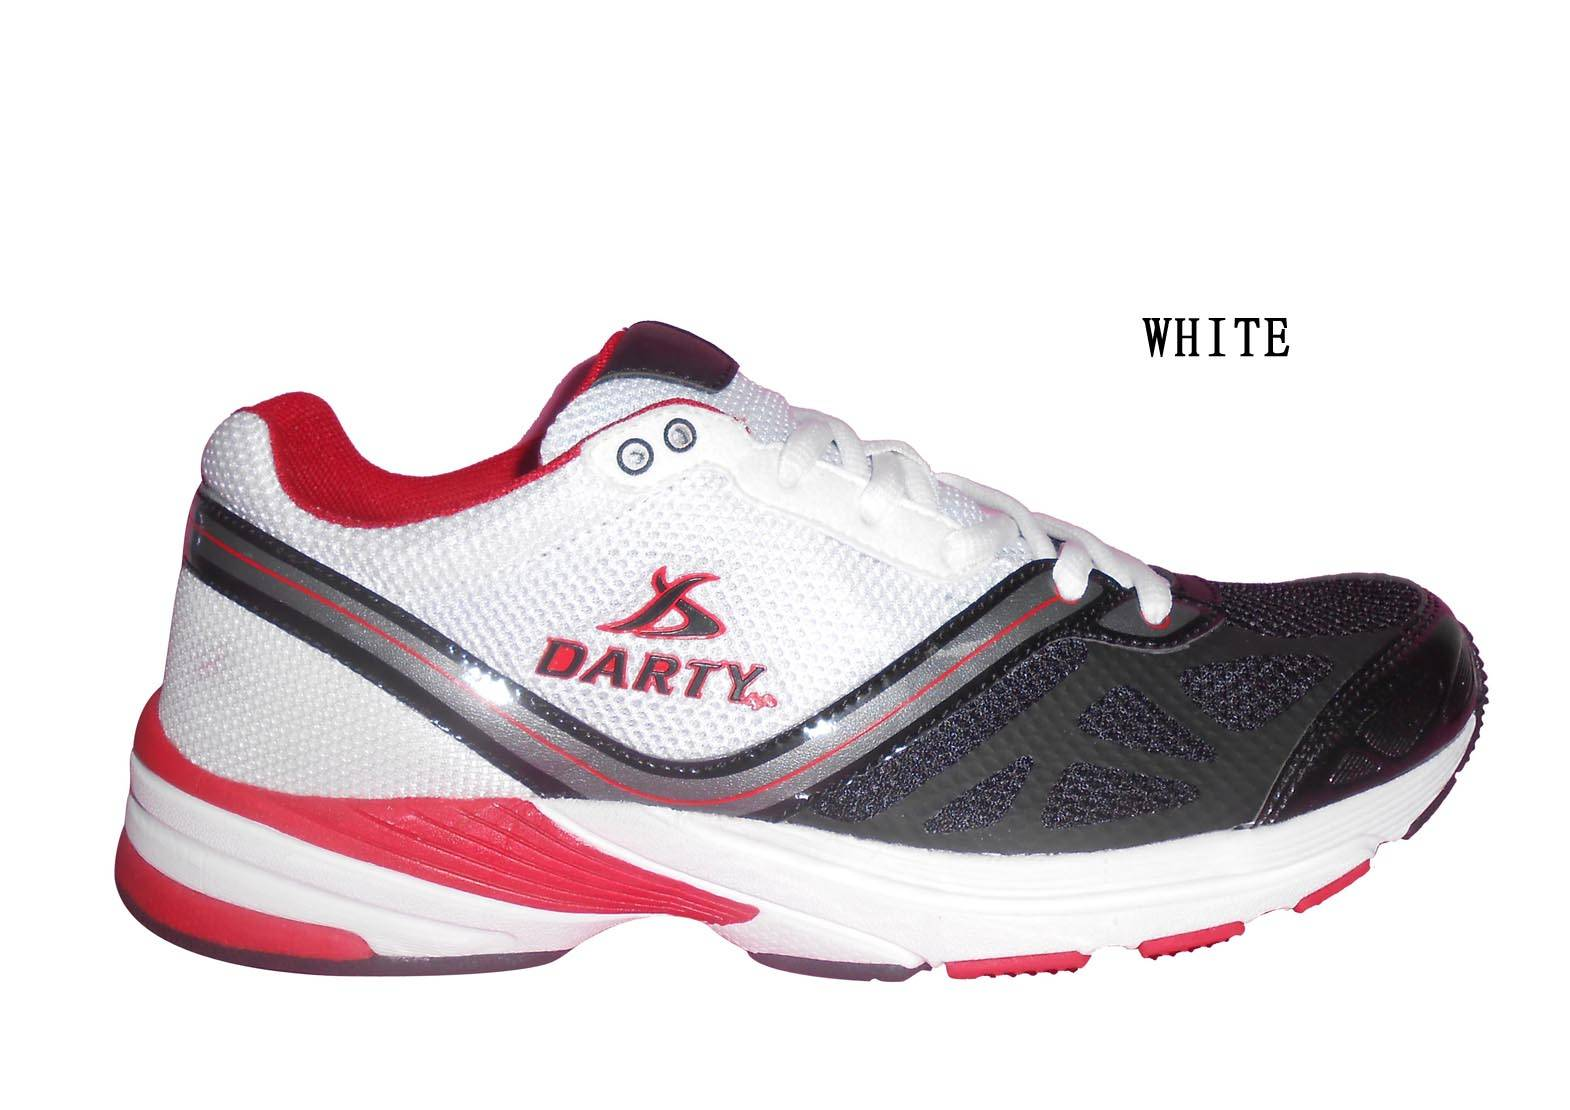 2014 hot selling running shoes with high quality